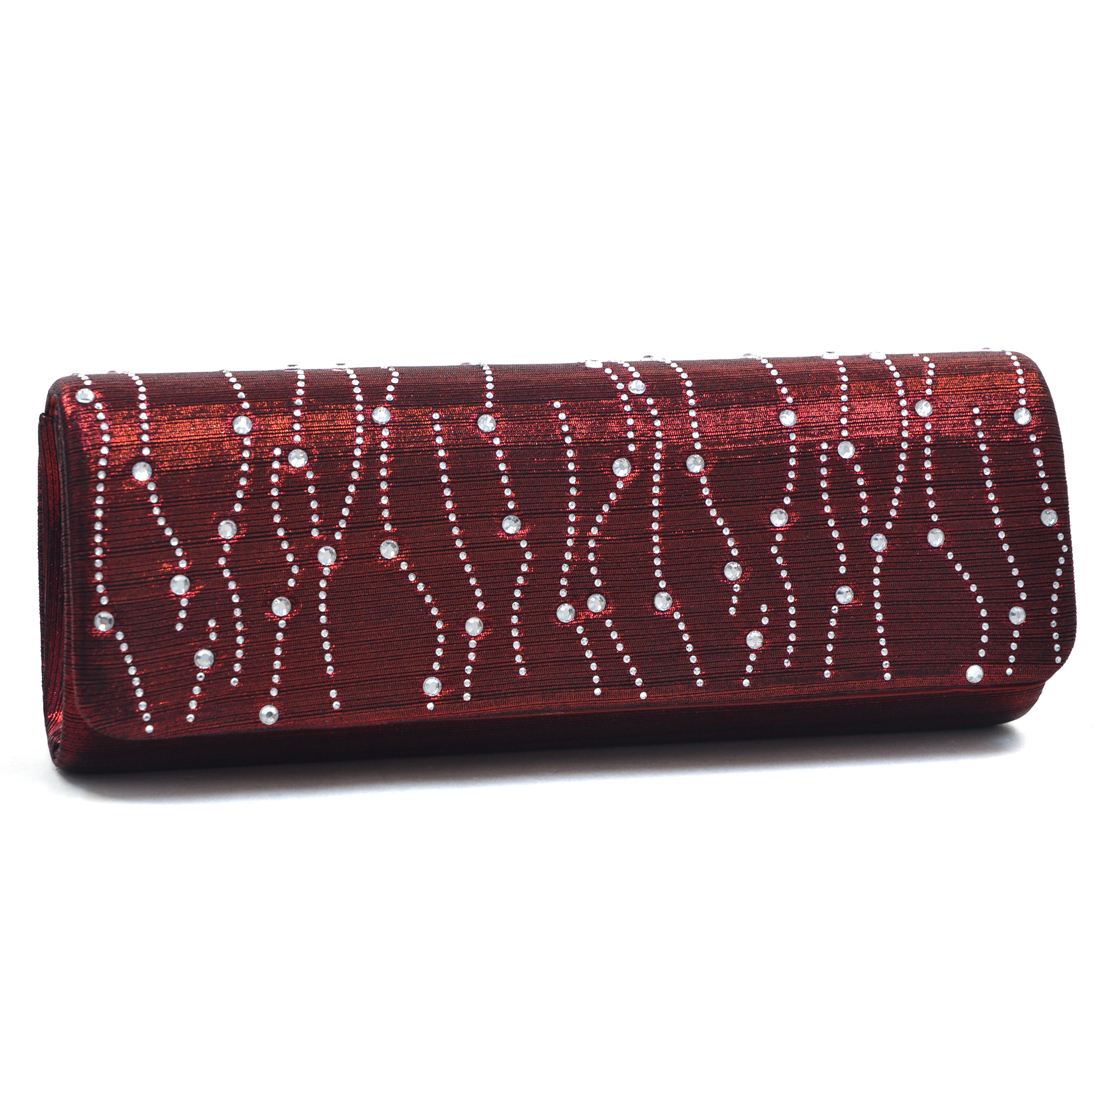 Dasein® Rhinestone Decor Evening Clutch